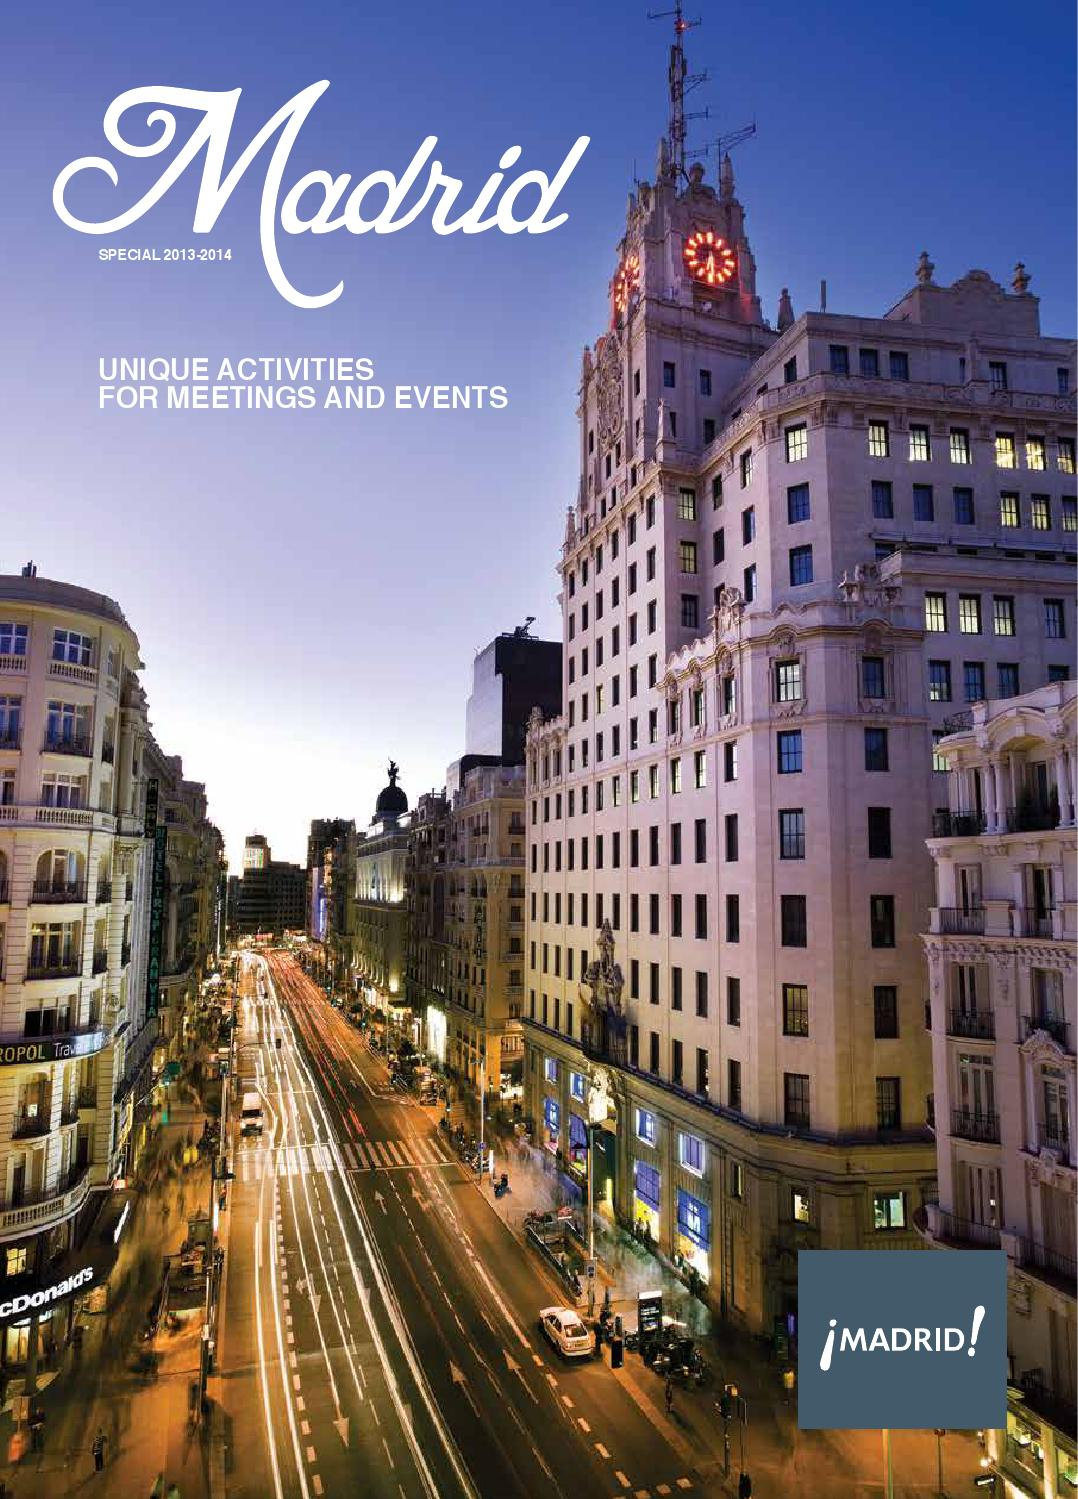 Madrid Special 2013 2014 By Grupo Eventoplus Issuu